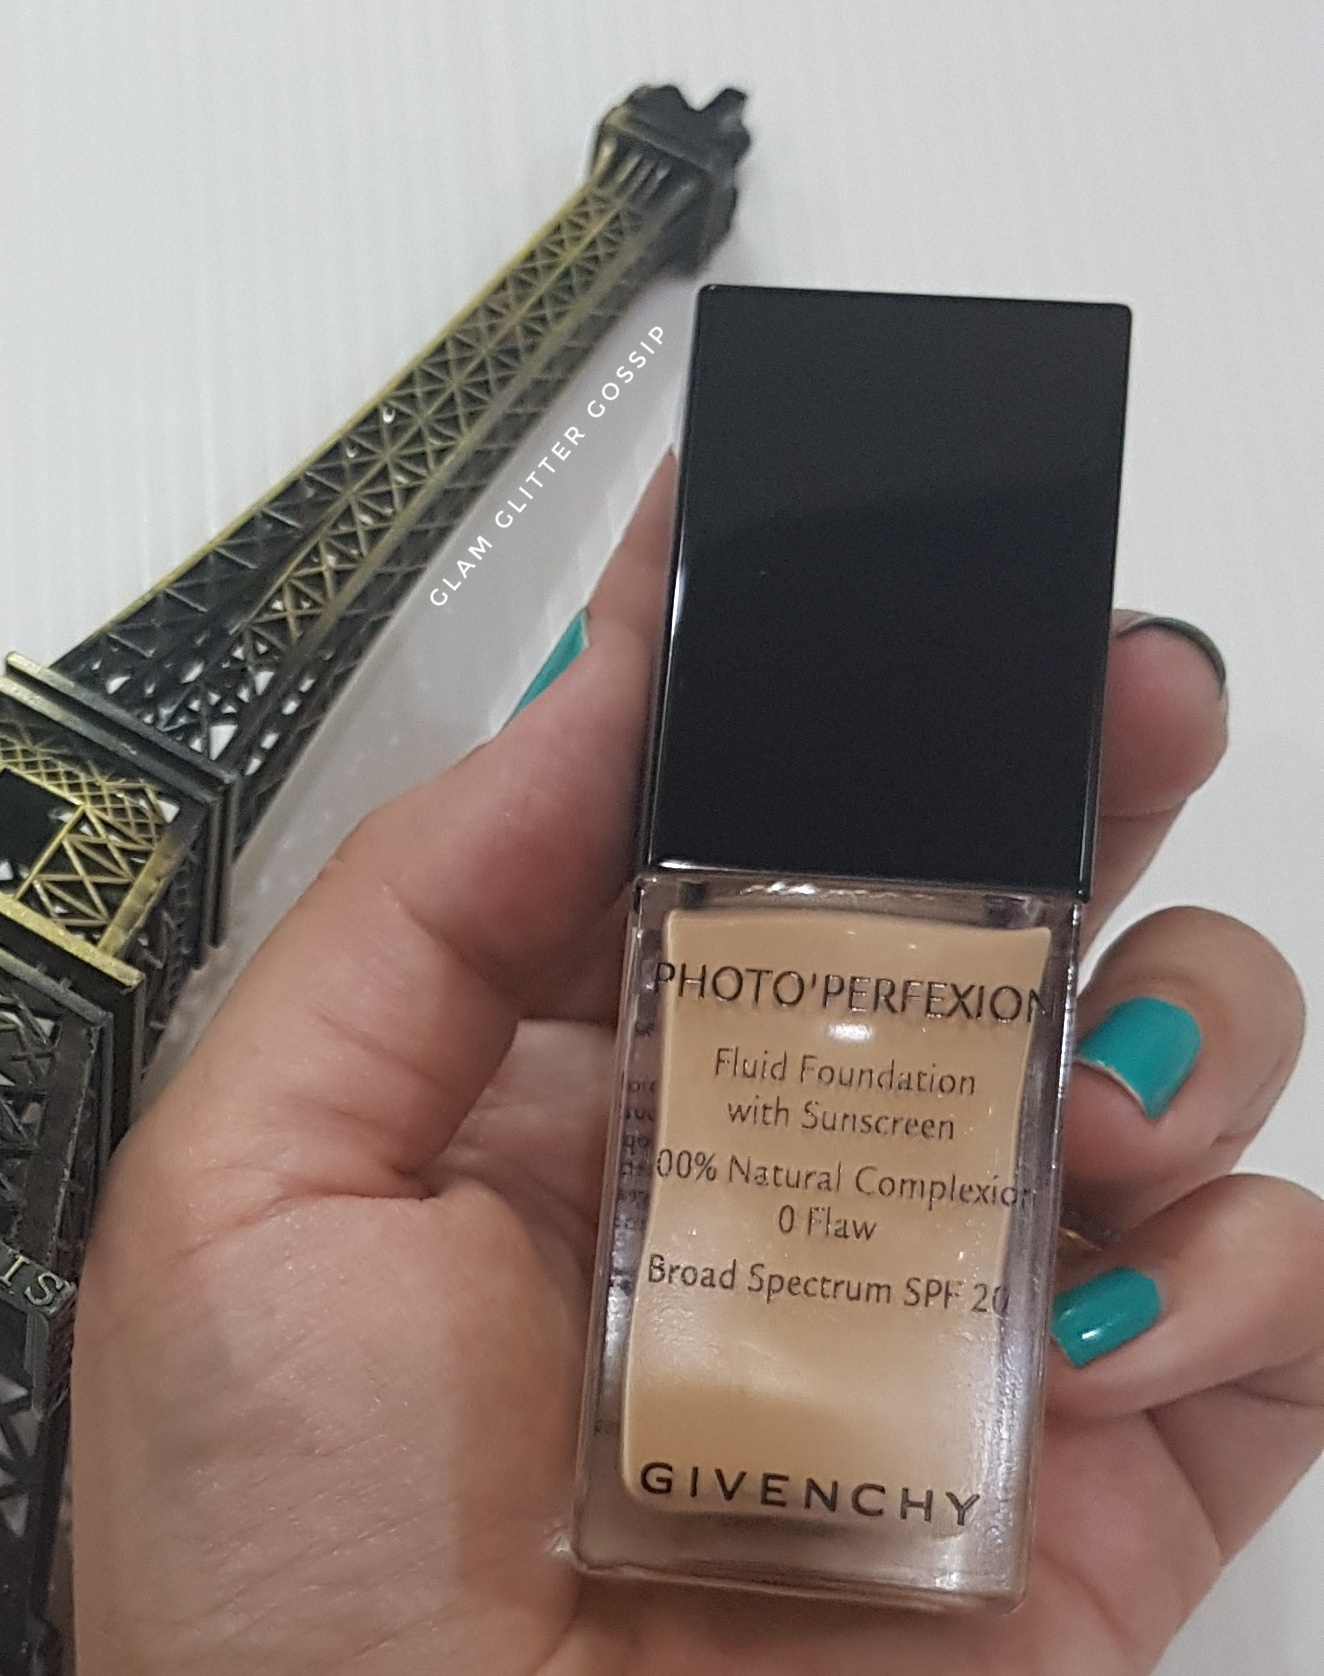 Givenchy Photo'Perfexion 100% Natural Complexion 0 Flaw Liquid Foundation Review